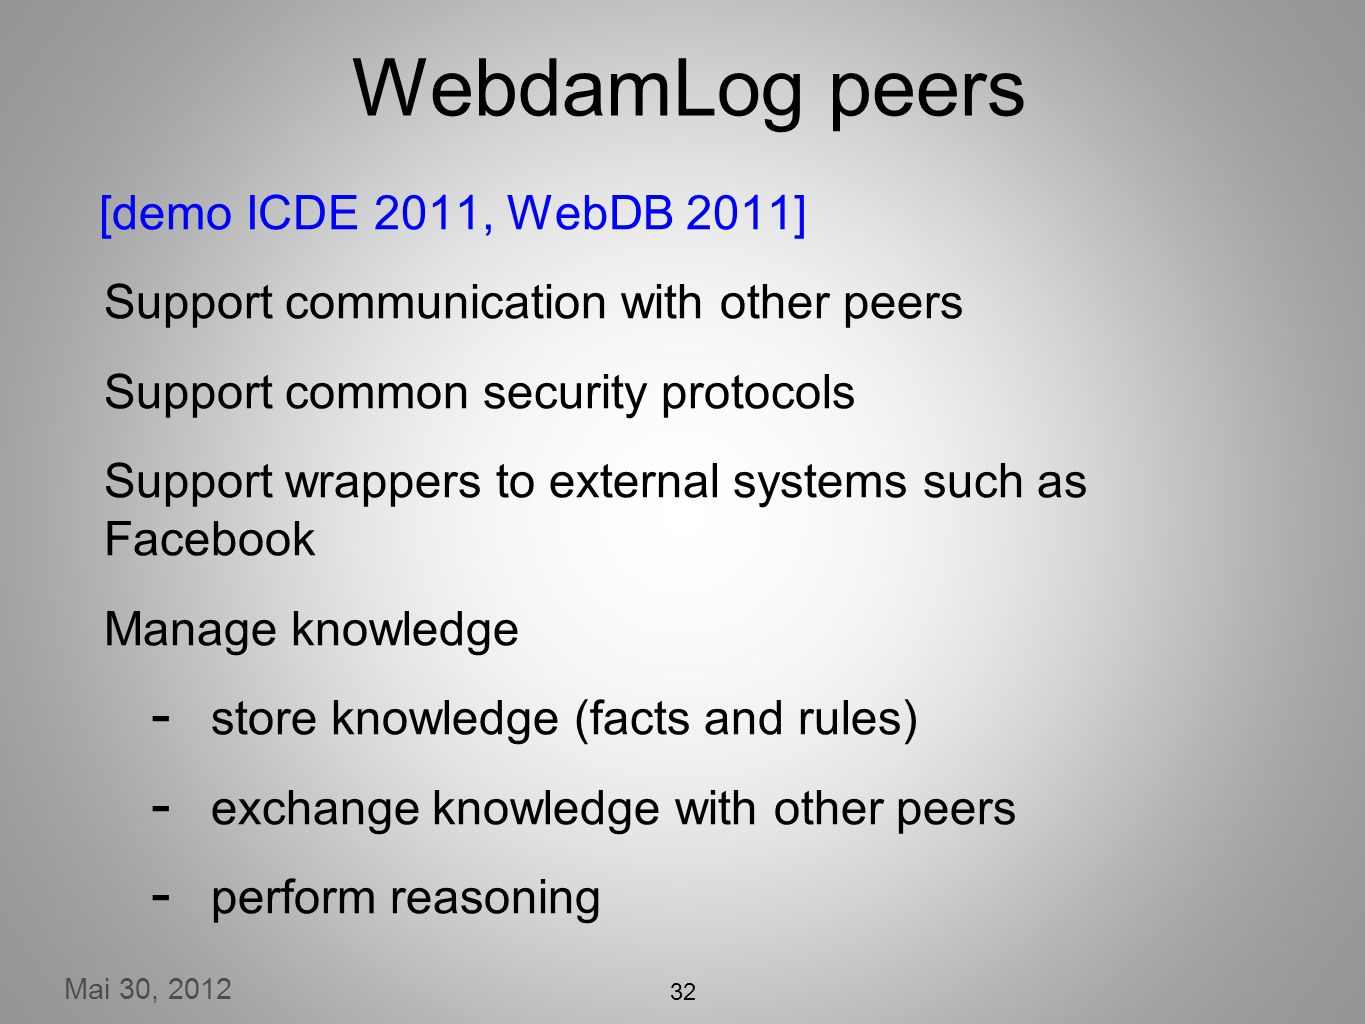 Mai 30, 2012 32 WebdamLog peers [demo ICDE 2011, WebDB 2011] Support communication with other peers Support common security protocols Support wrappers to external systems such as Facebook Manage knowledge store knowledge (facts and rules) exchange knowledge with other peers perform reasoning